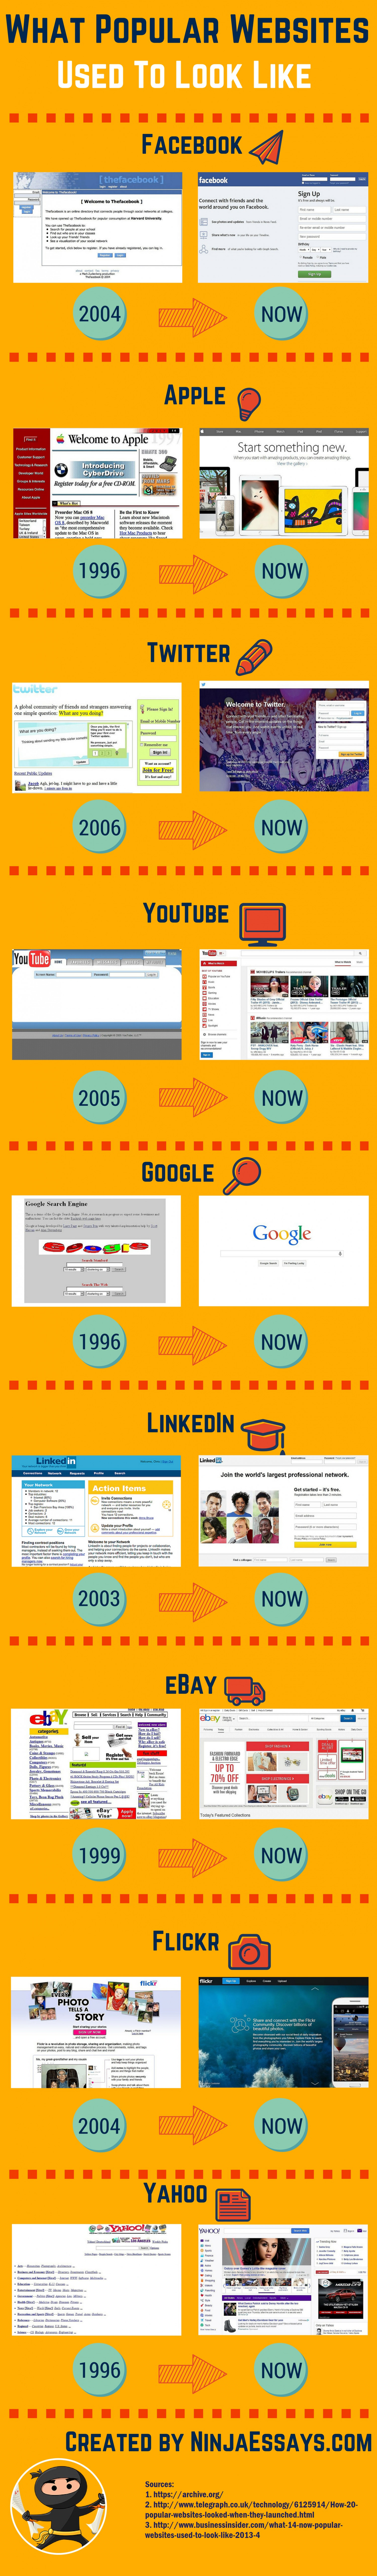 What Popular Websites Used To Look Like Infographic